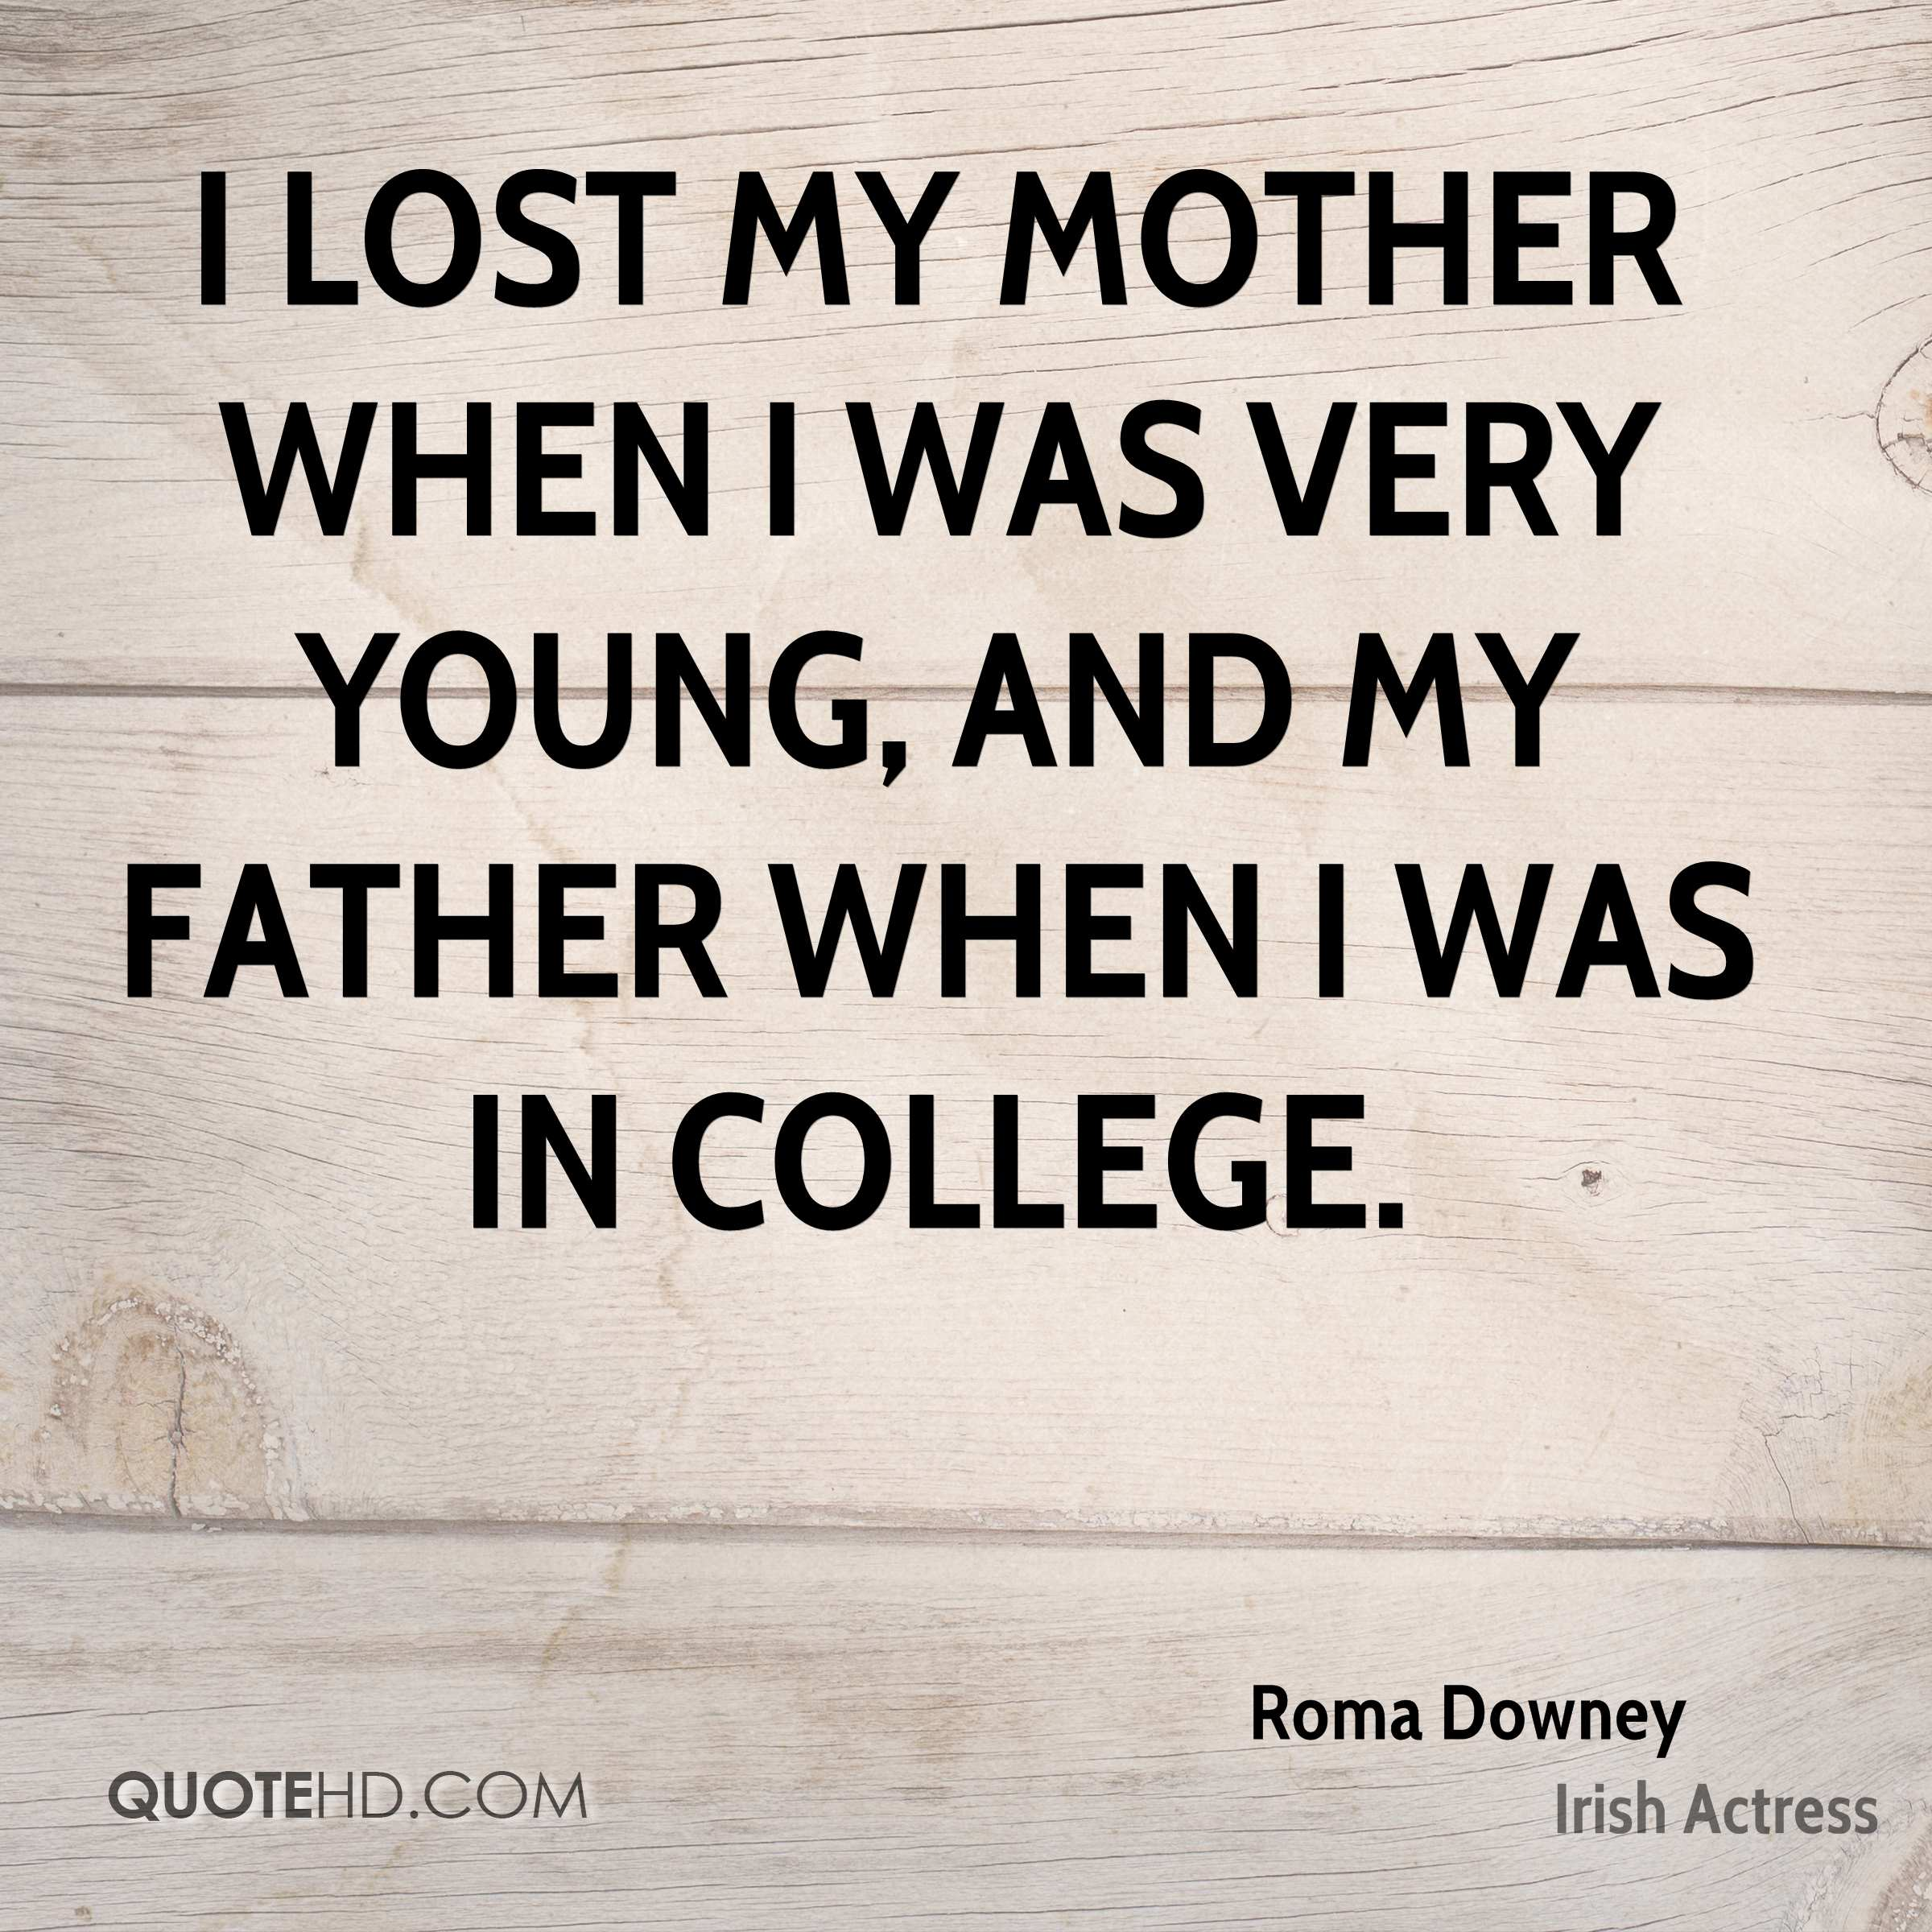 Roma Downey Quotes | QuoteHD